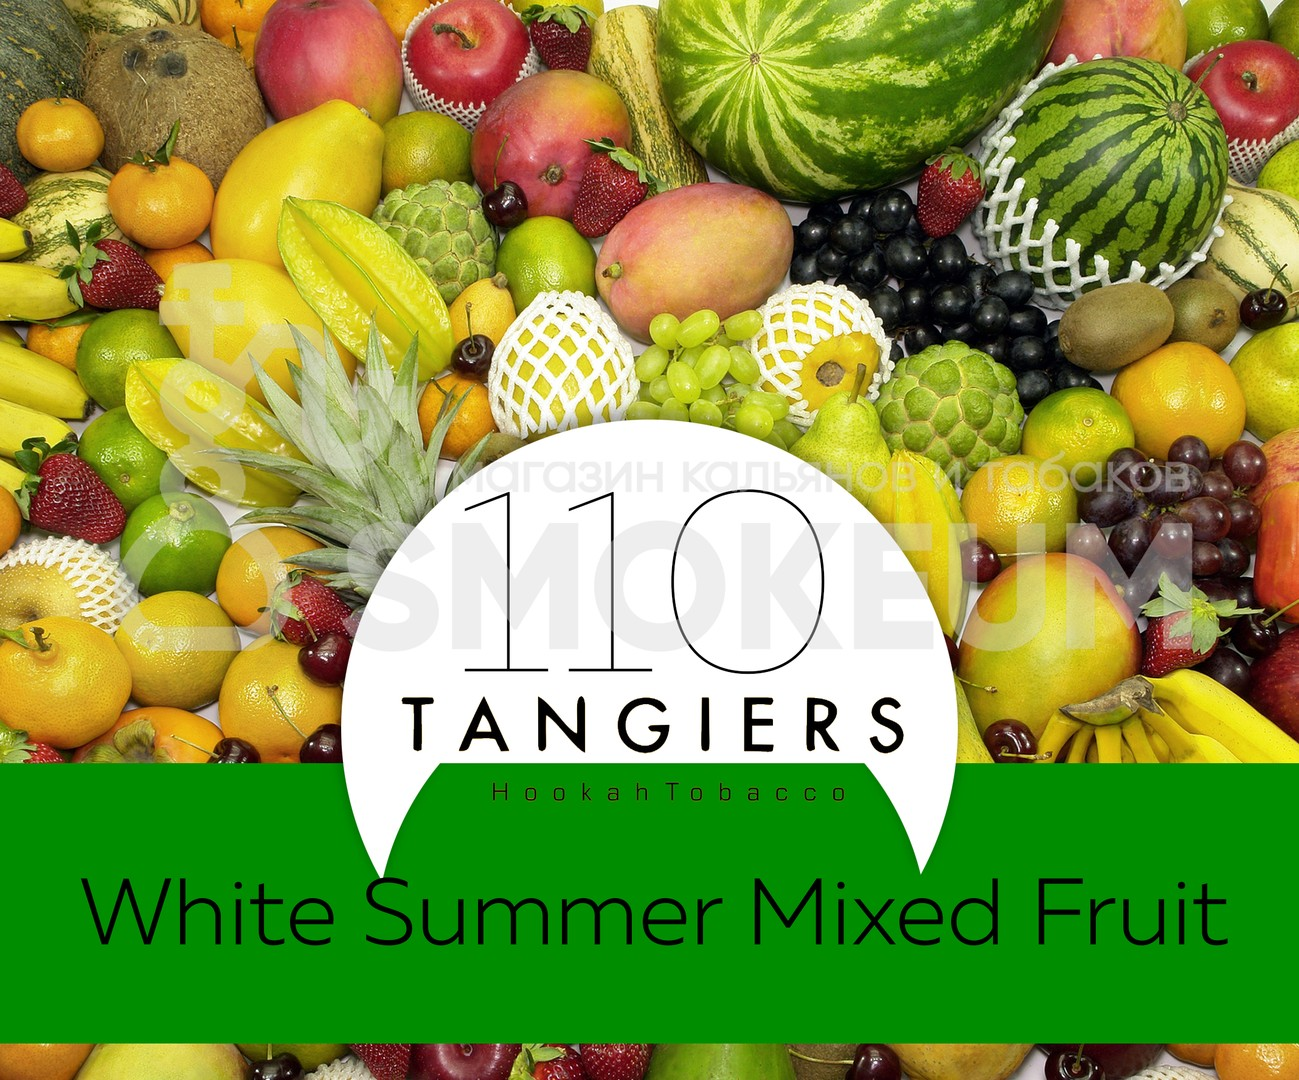 Табак Tangiers - White Summer Mixed Fruit Birquq (Фрукты Белого Лета) 250 гр